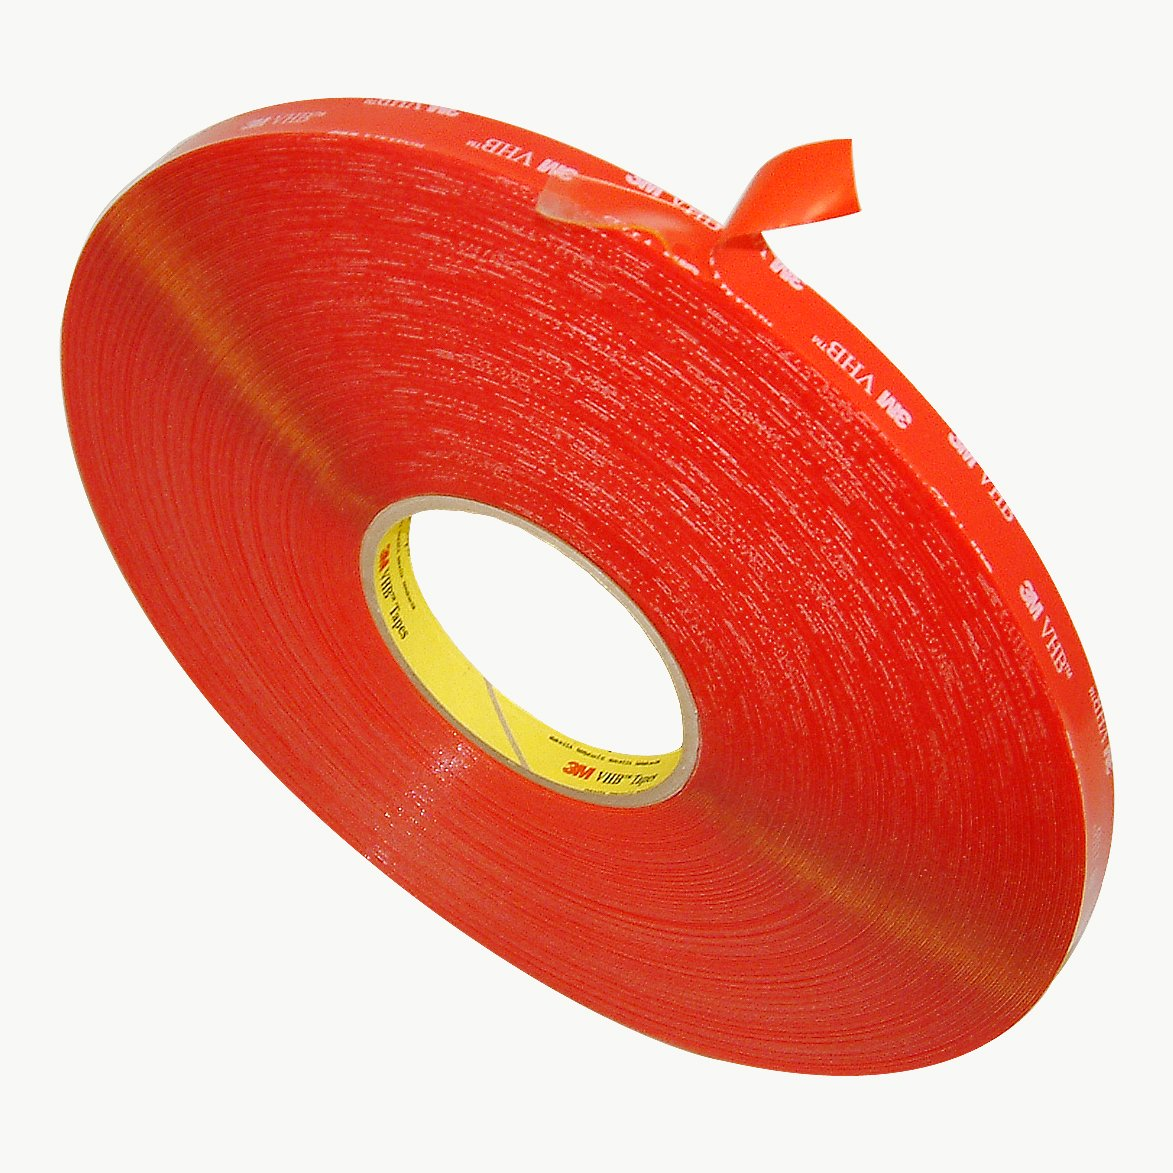 3M VHB 4905 General Purpose Acrylic Adhesive Tape, 20 mils thick, 72 yds Length x 1/2'' Width, Clear